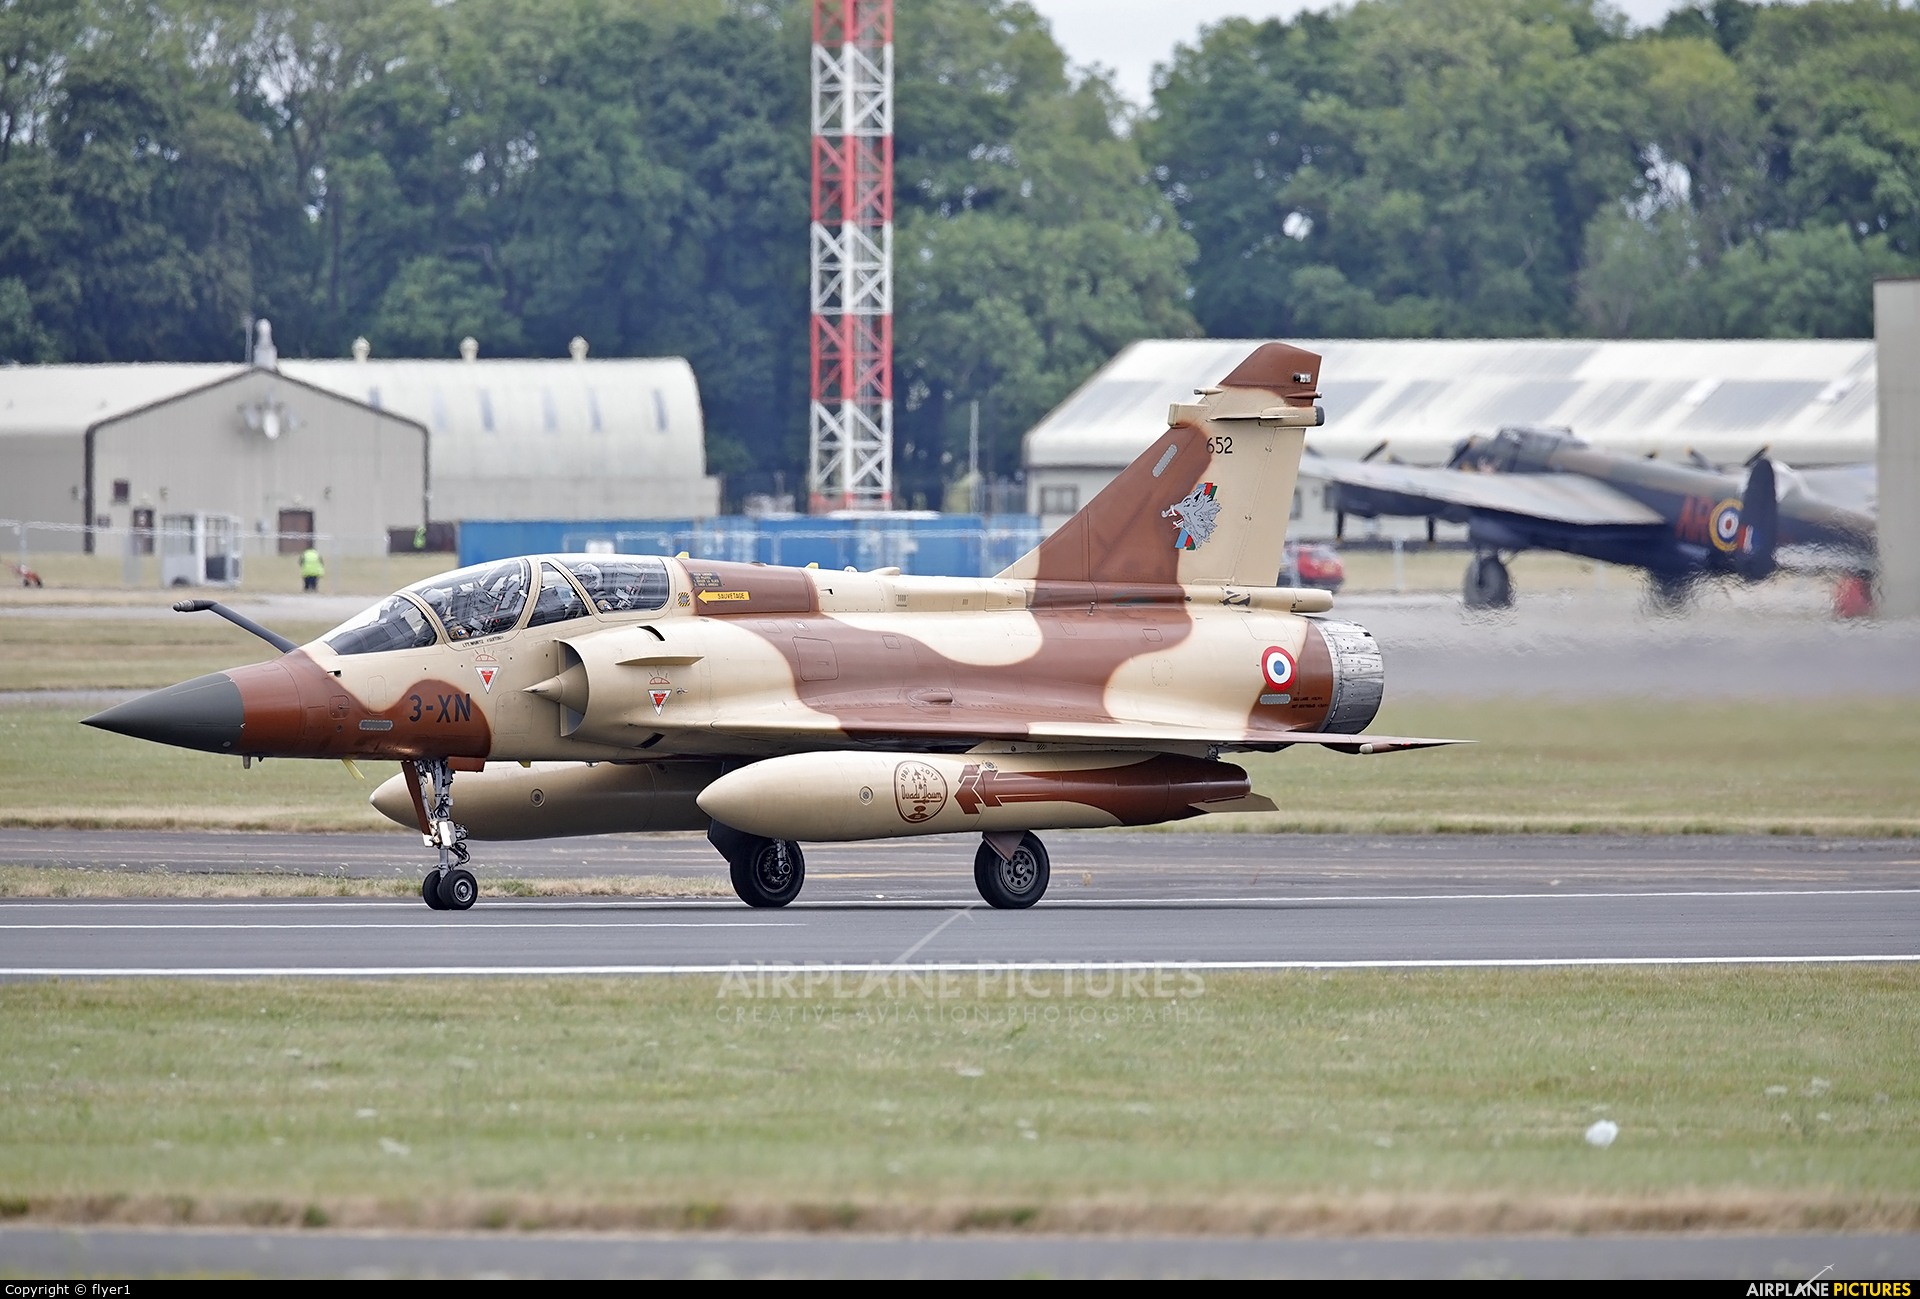 France - Air Force 652 aircraft at Fairford